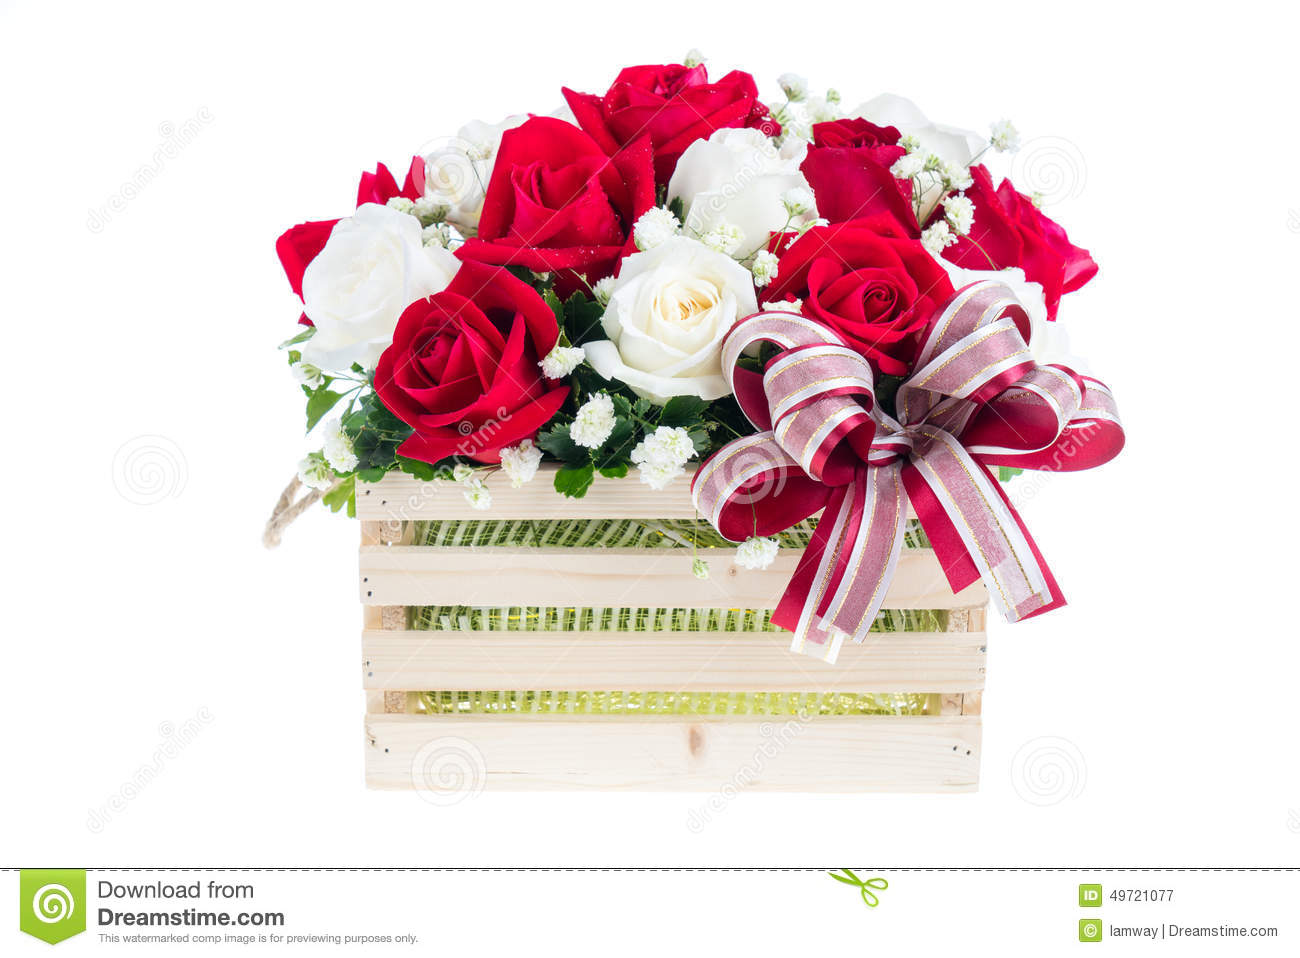 Red and white rose in a wooden basket with beautiful ribbon gif download red and white rose in a wooden basket with beautiful ribbon gif stock image izmirmasajfo